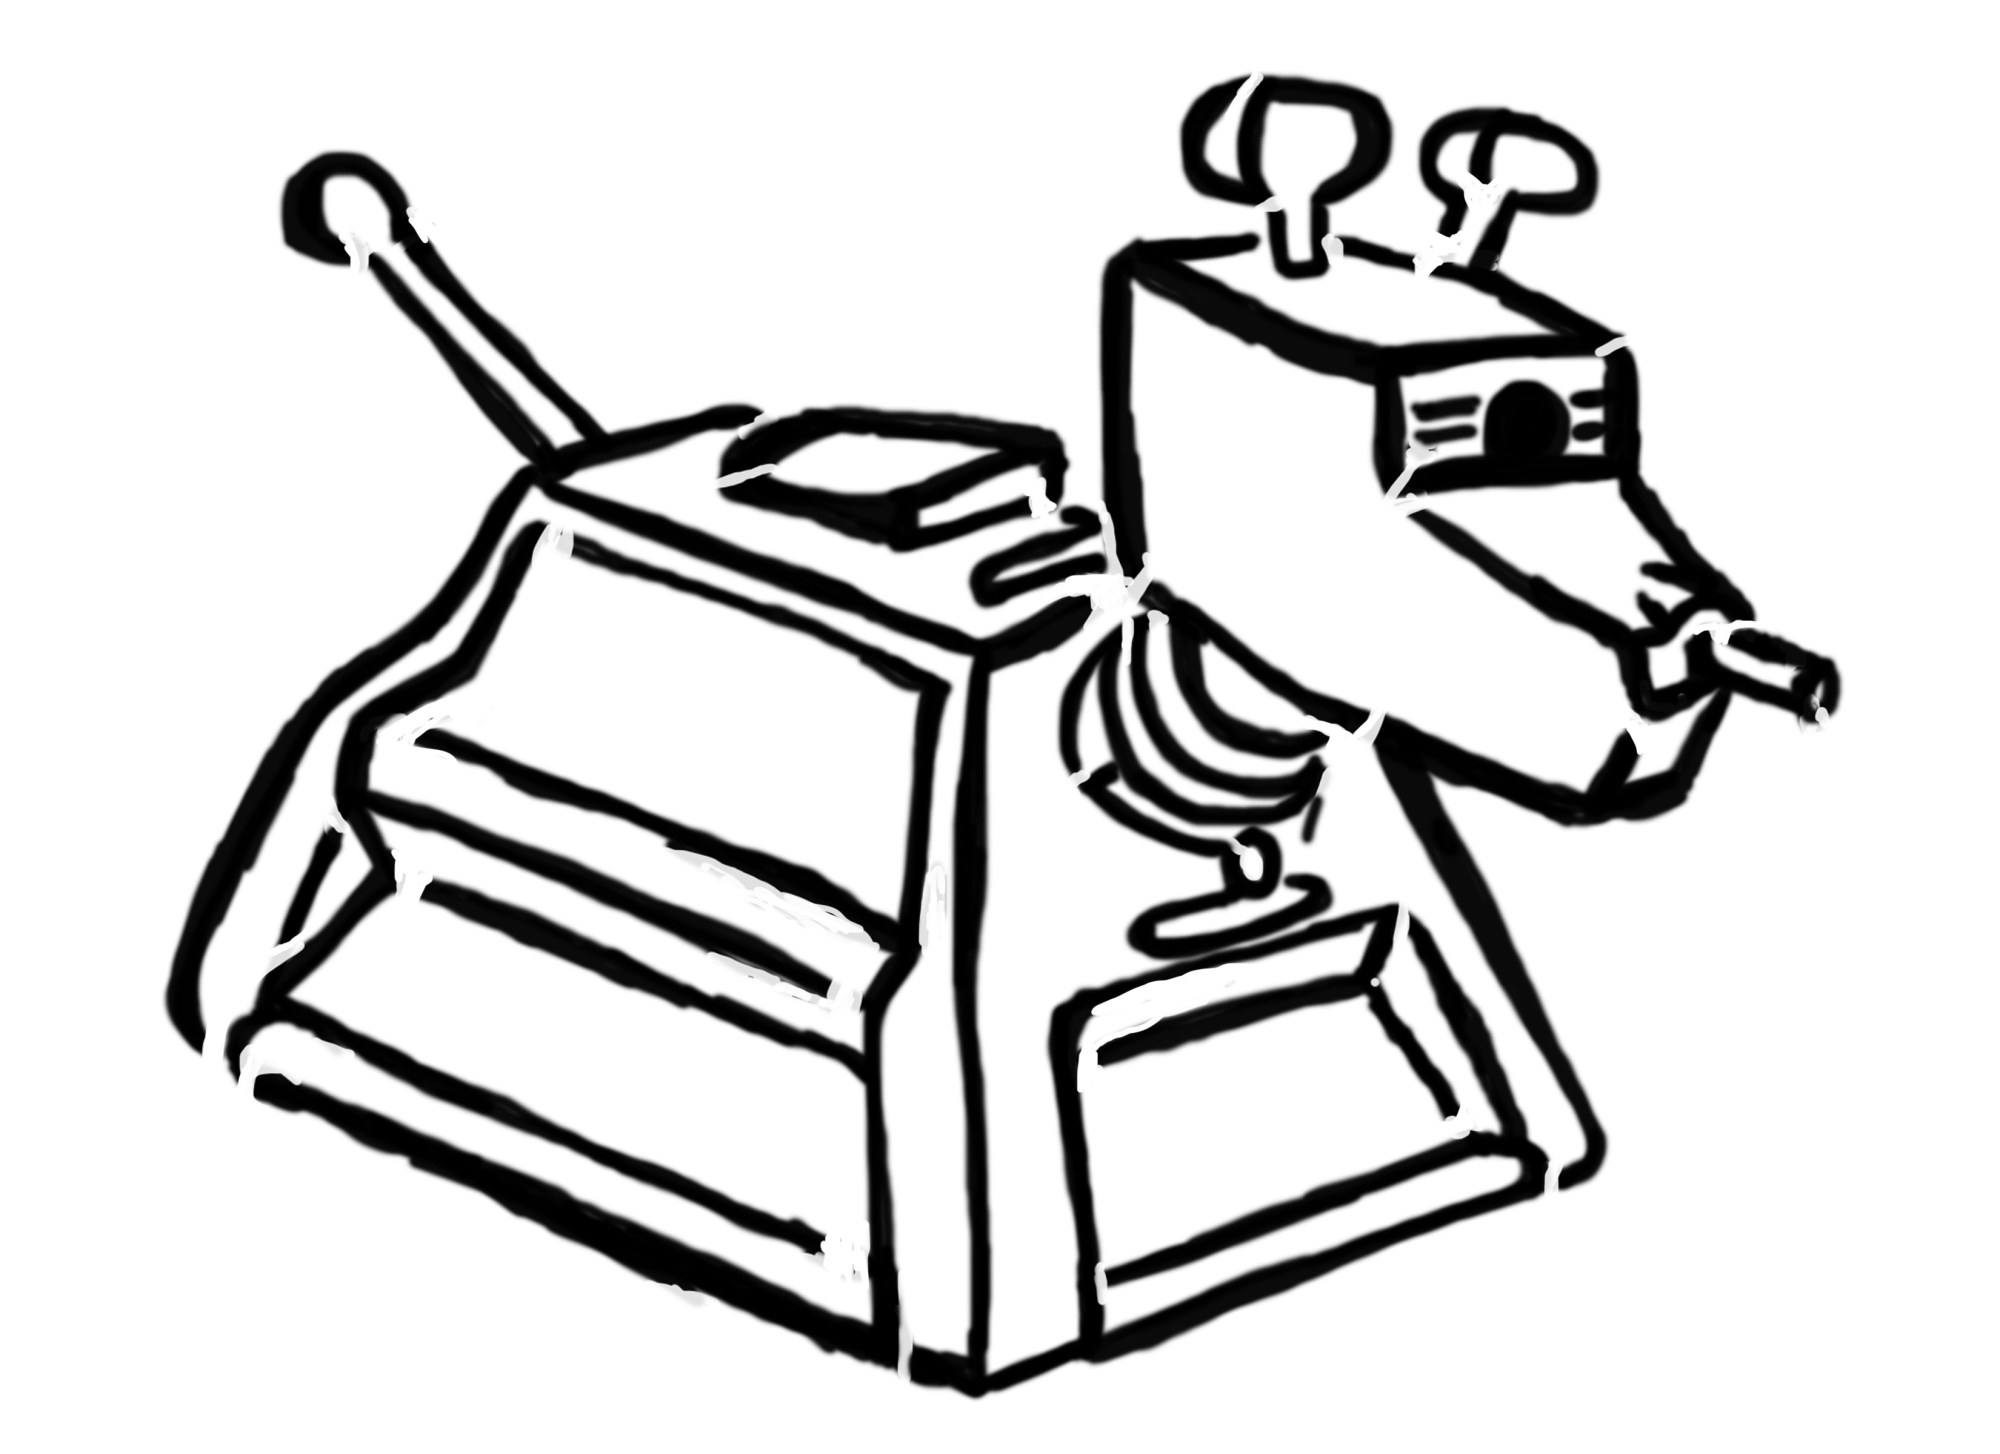 hight resolution of 3300x2400 doctor who clipart pumpkin carving stencil